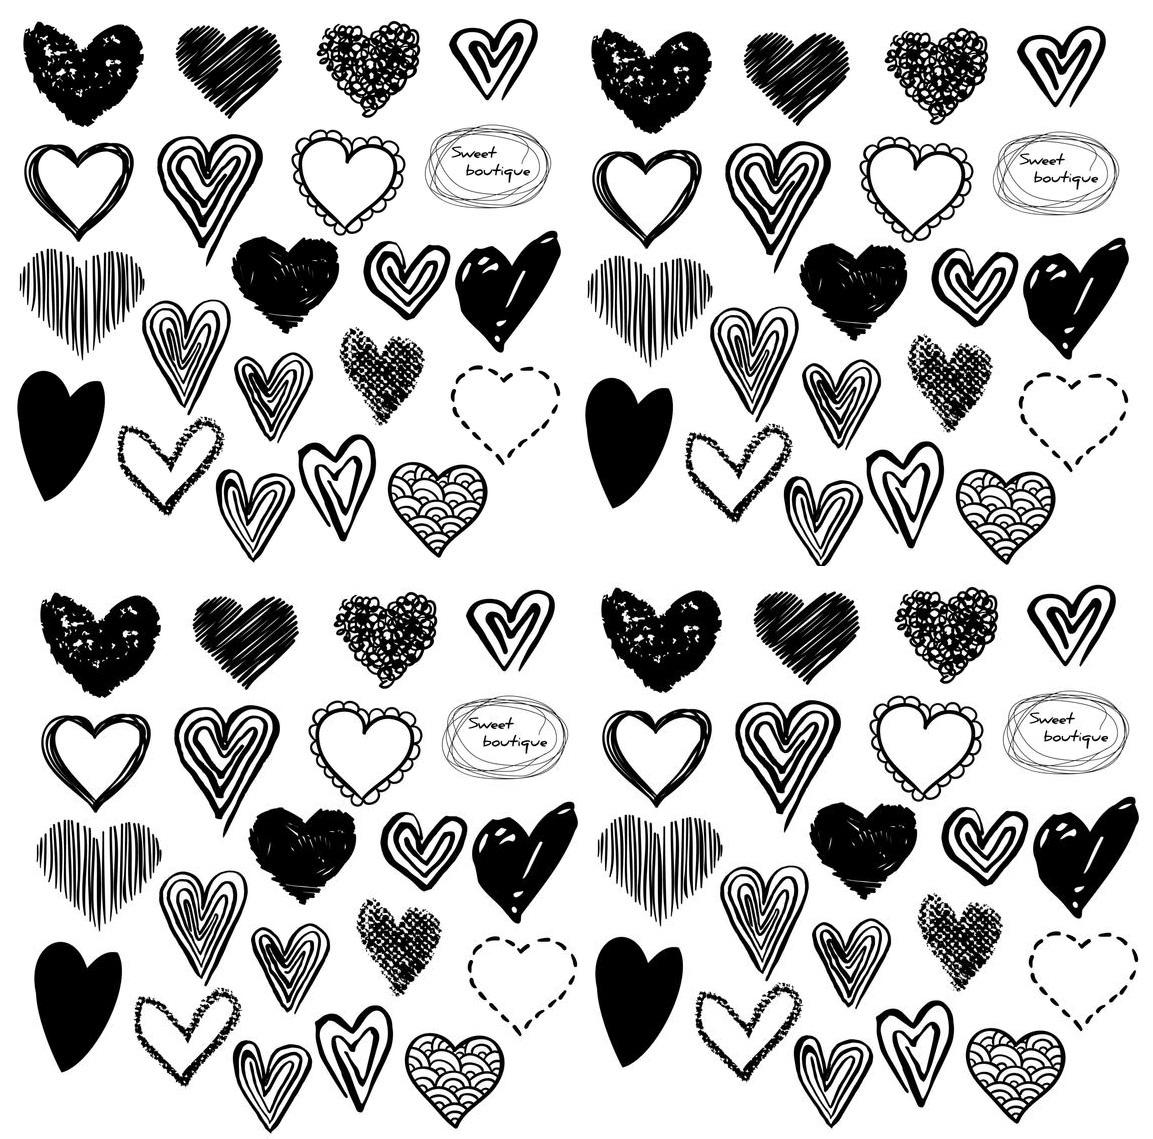 Small Hearts Cliparts Black And White